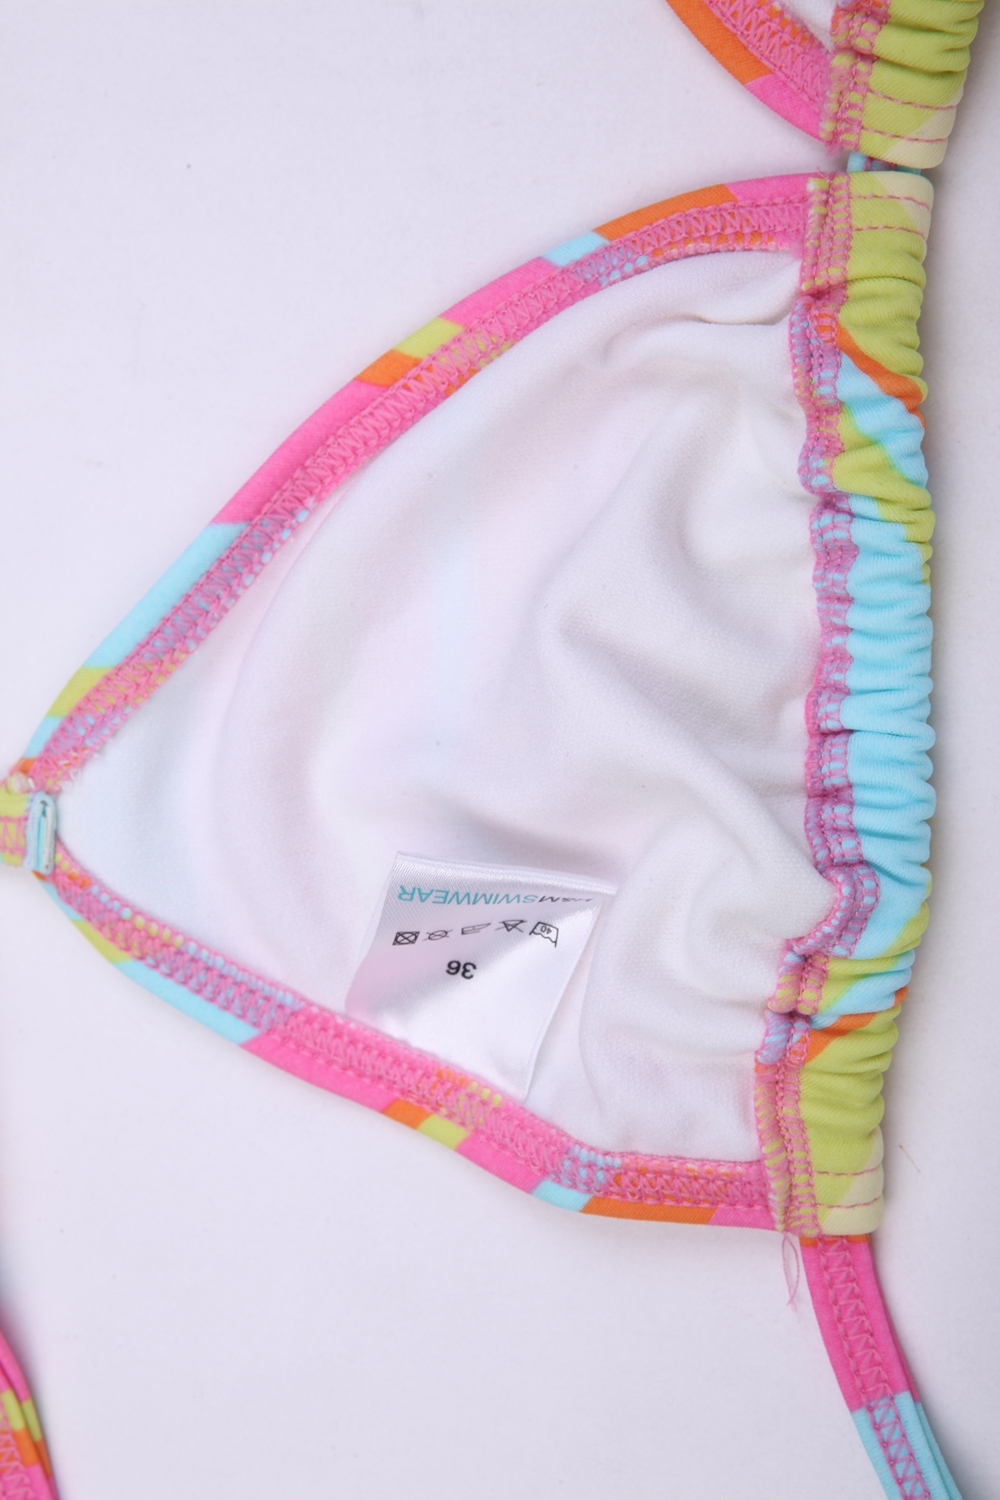 Brand new technology dog sexi swimsuit open bikini